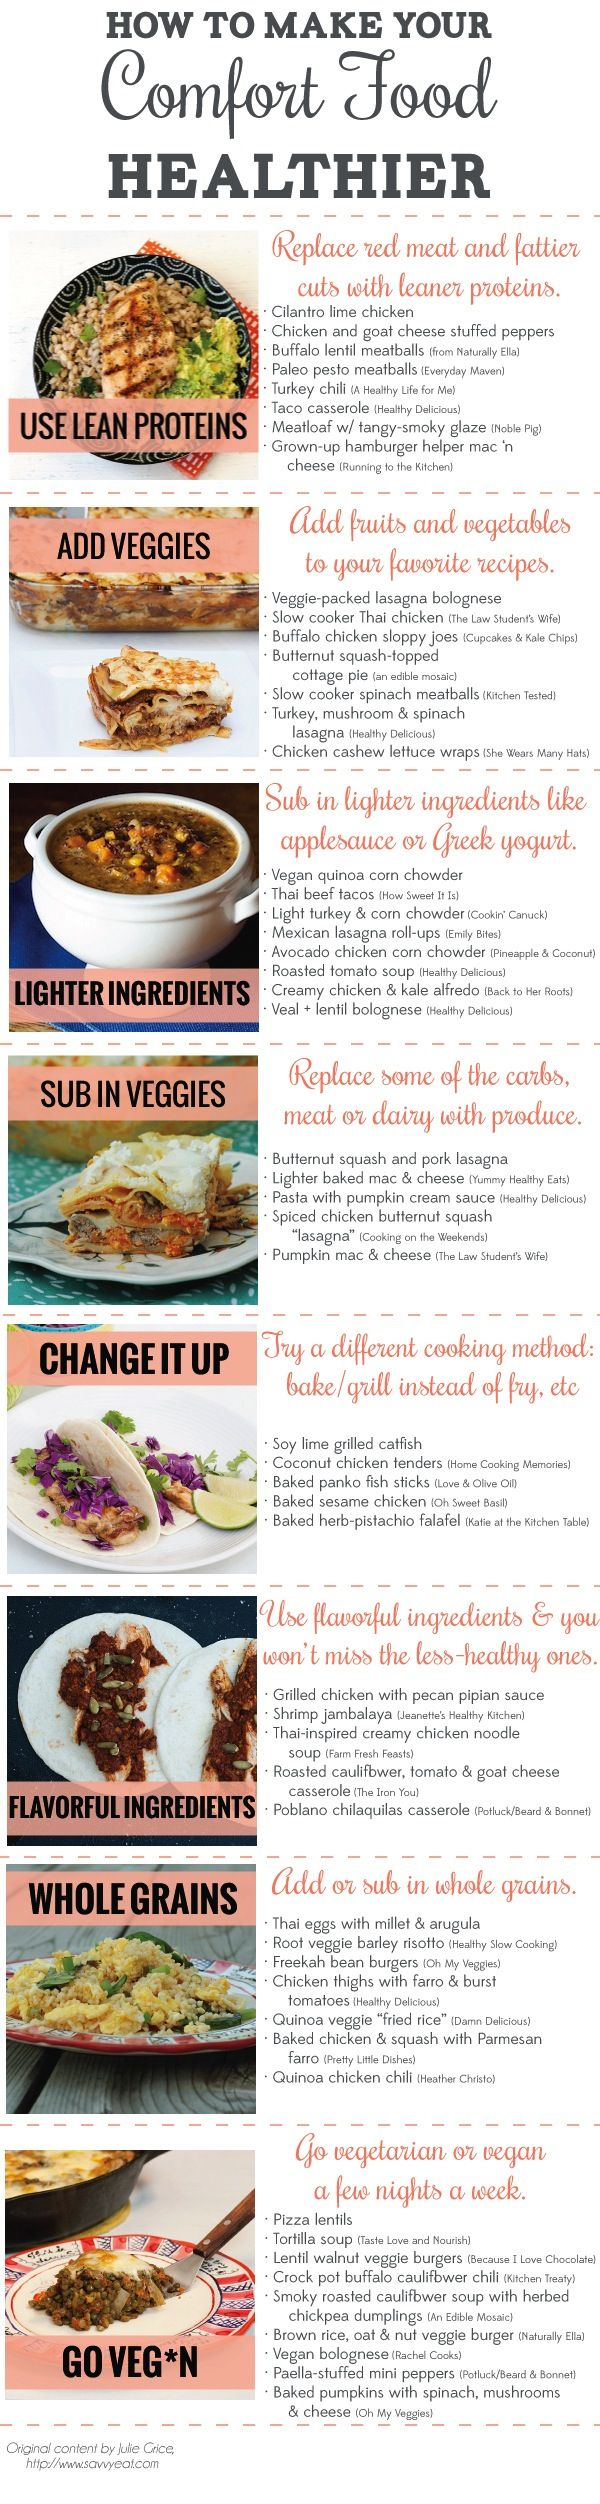 55 Ways to Make Comfort Food Healthier (+ Infographic) - Savvy Eats